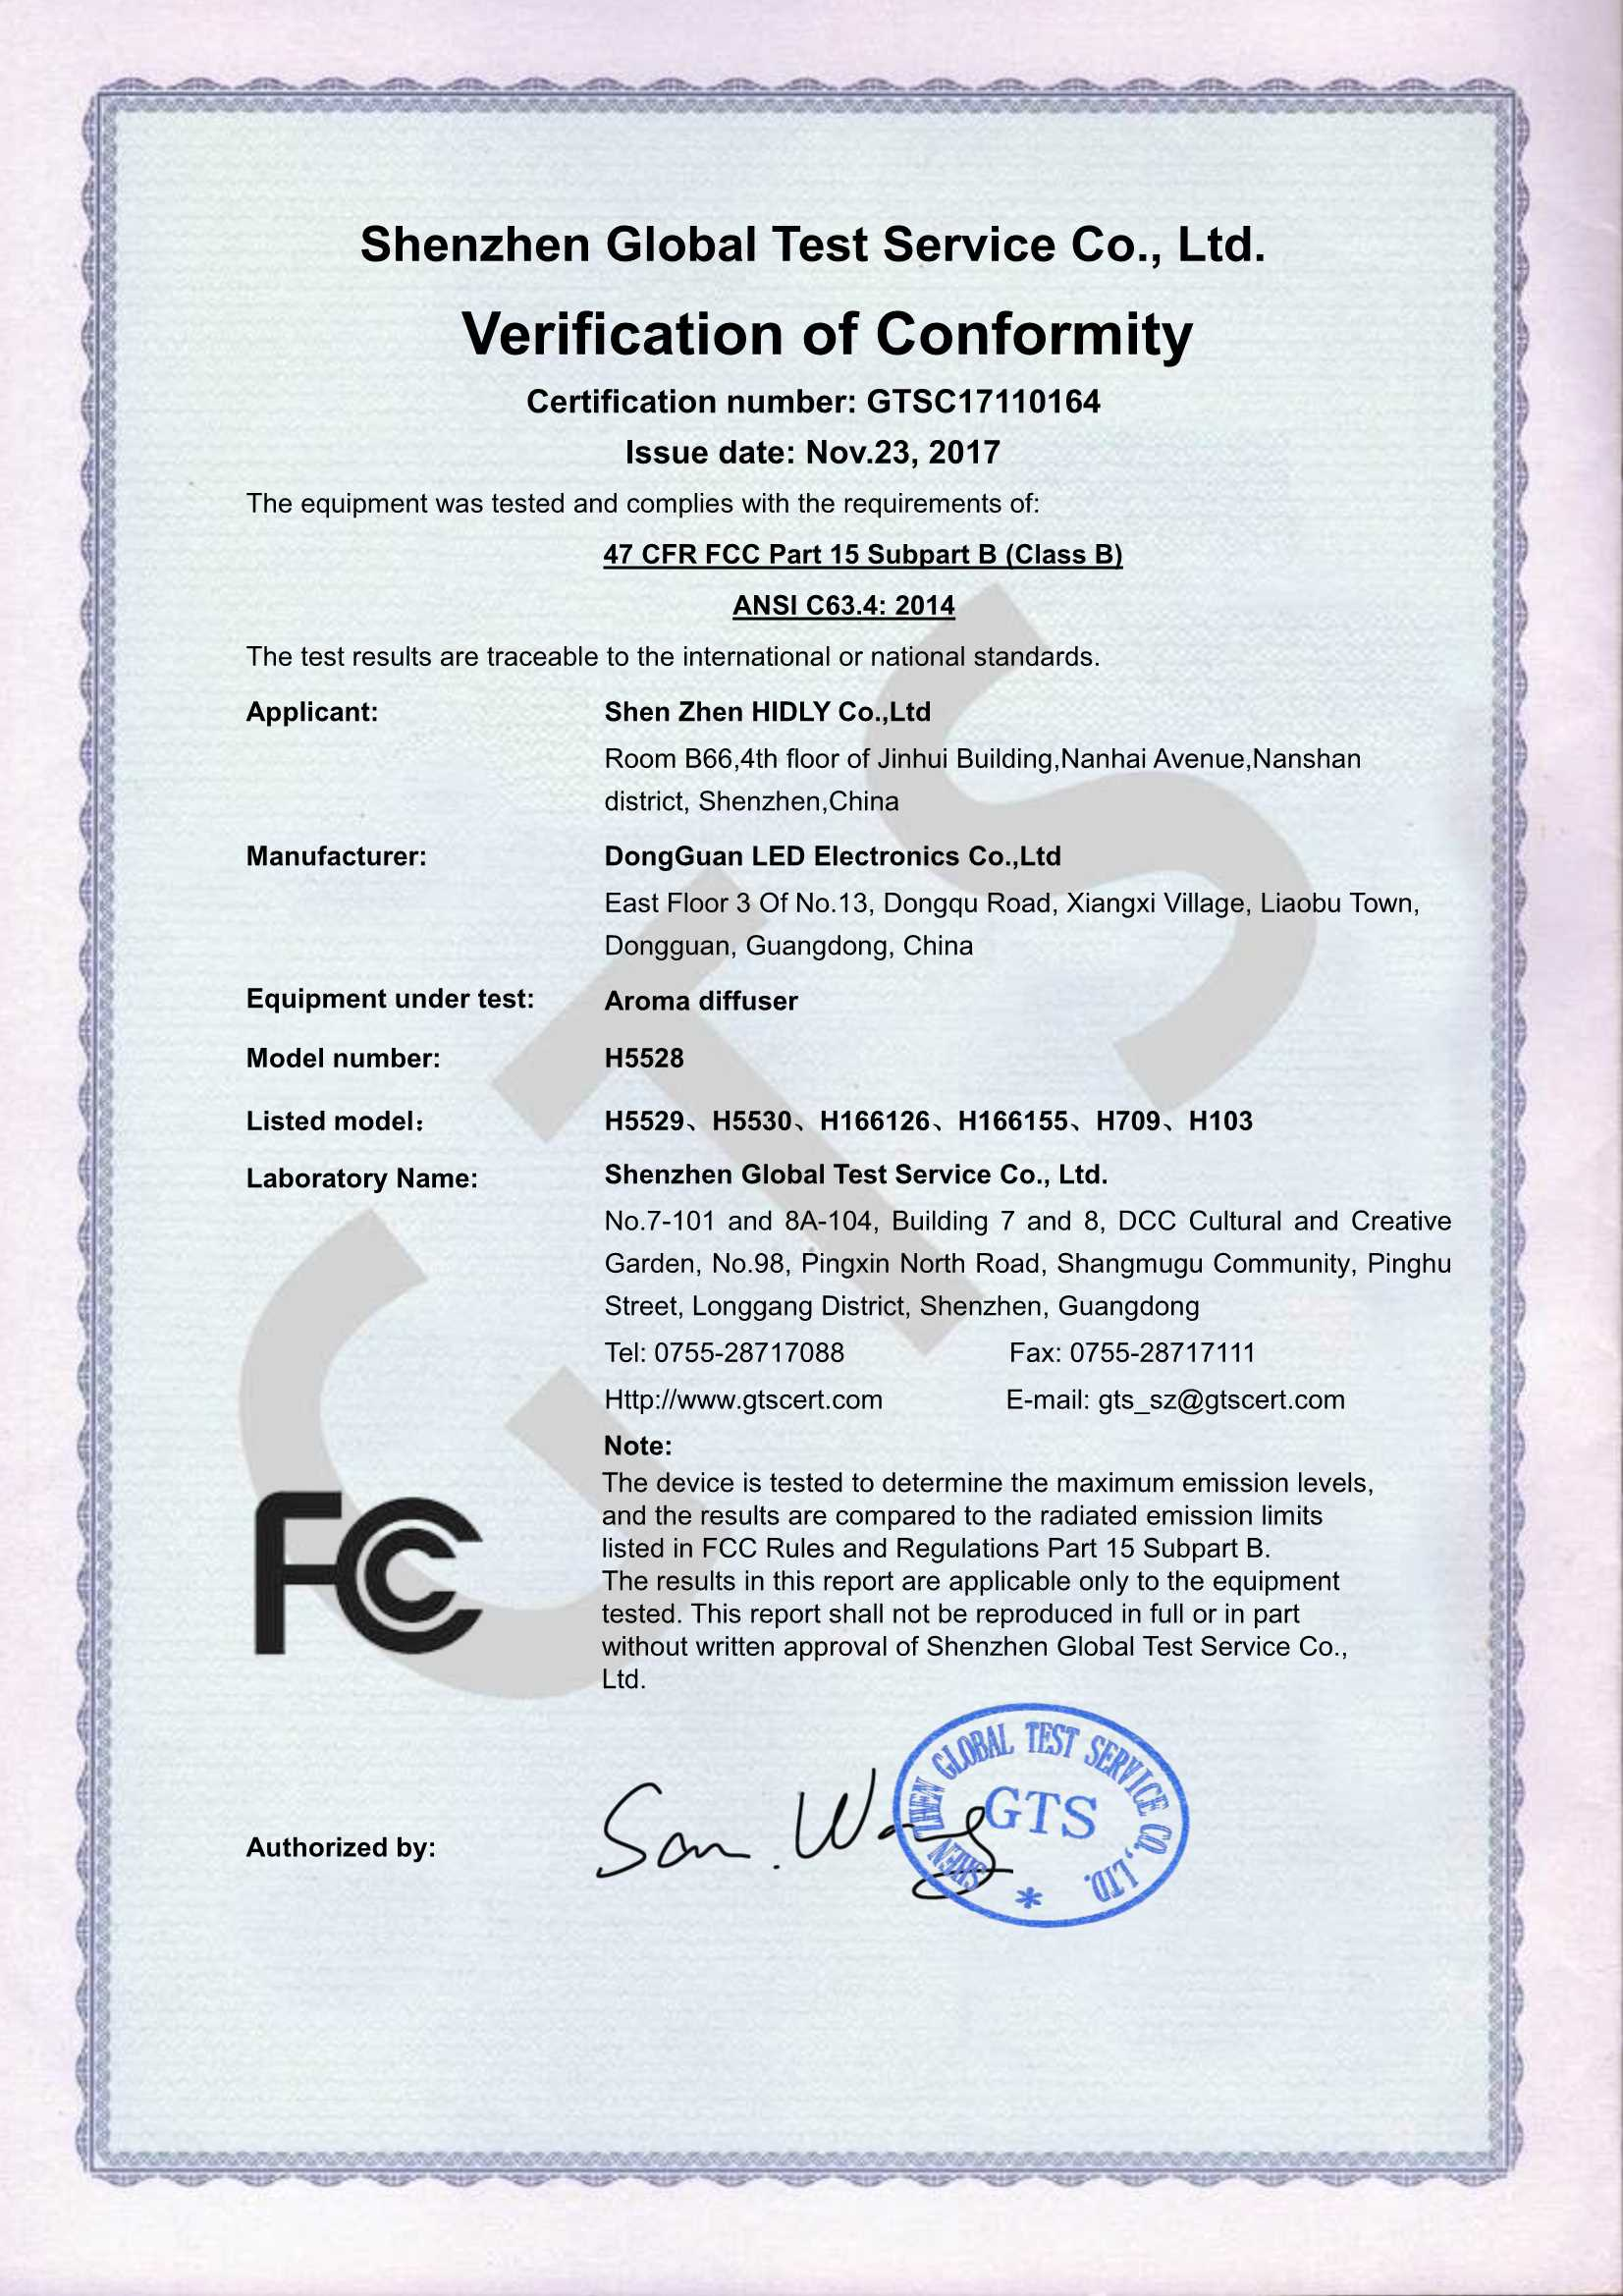 Our aroma diffusers(H5528)have acquired FCC Certifications: